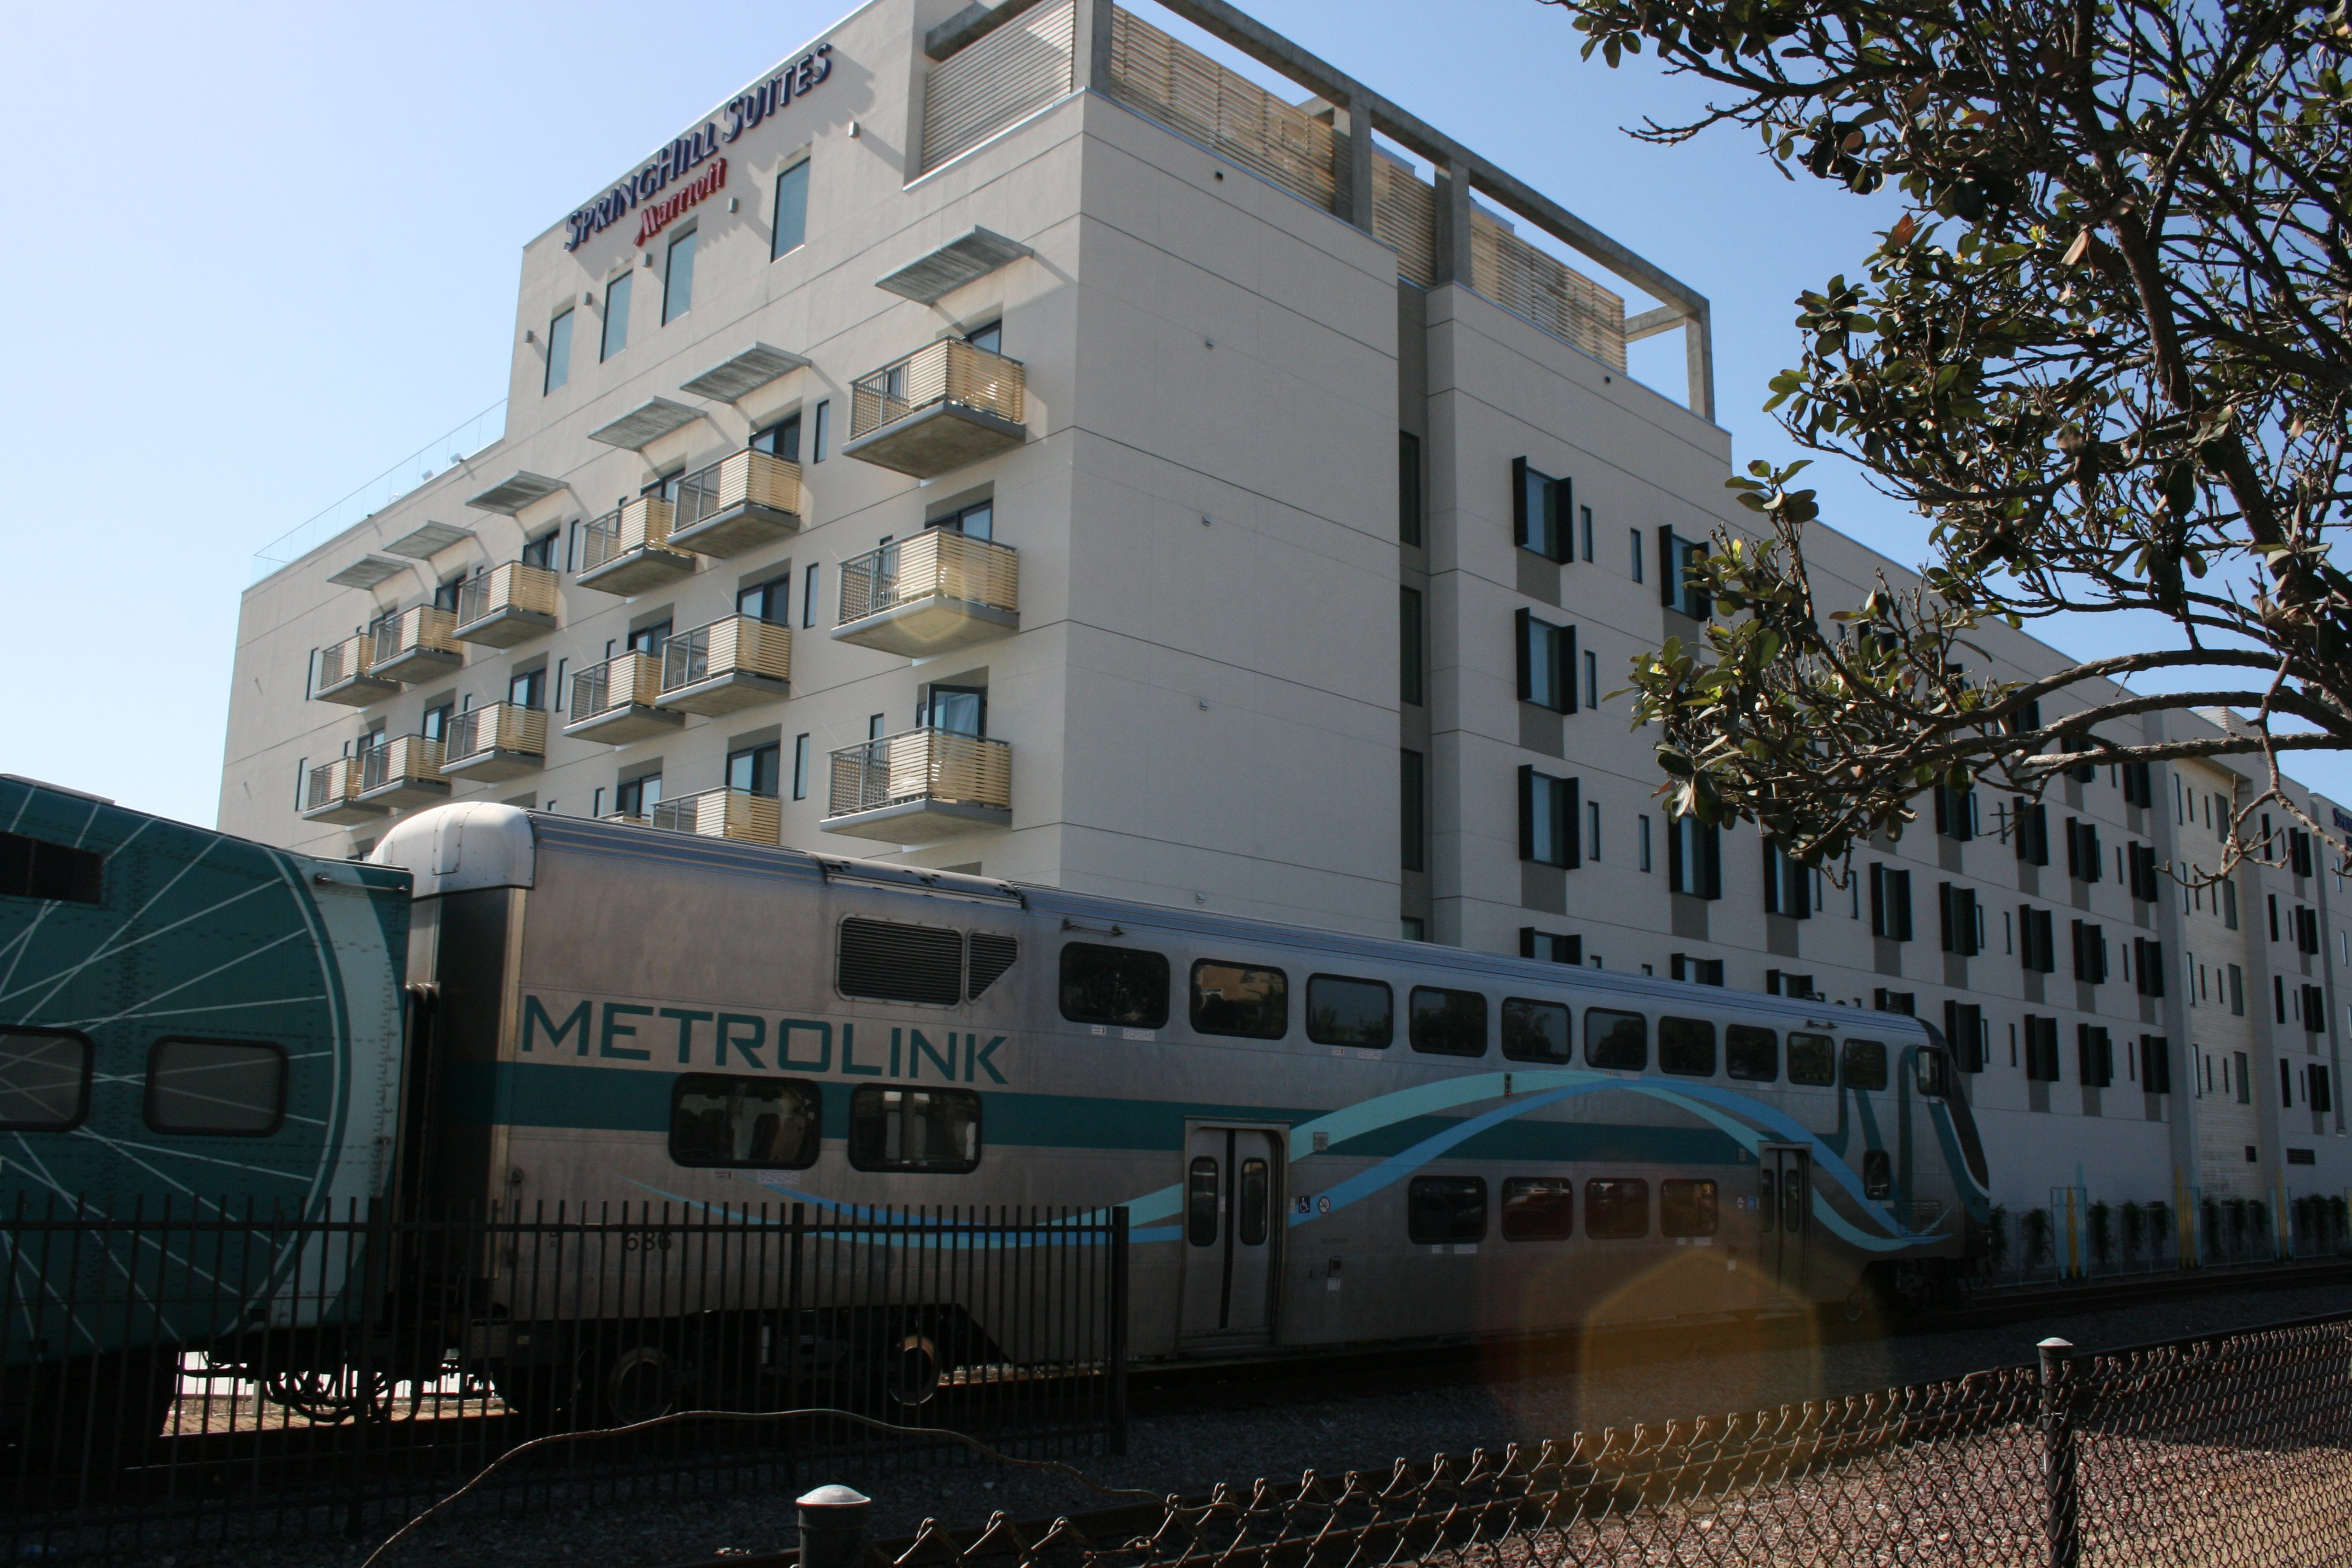 Oceanside approves $5M loan for railroad quiet zone